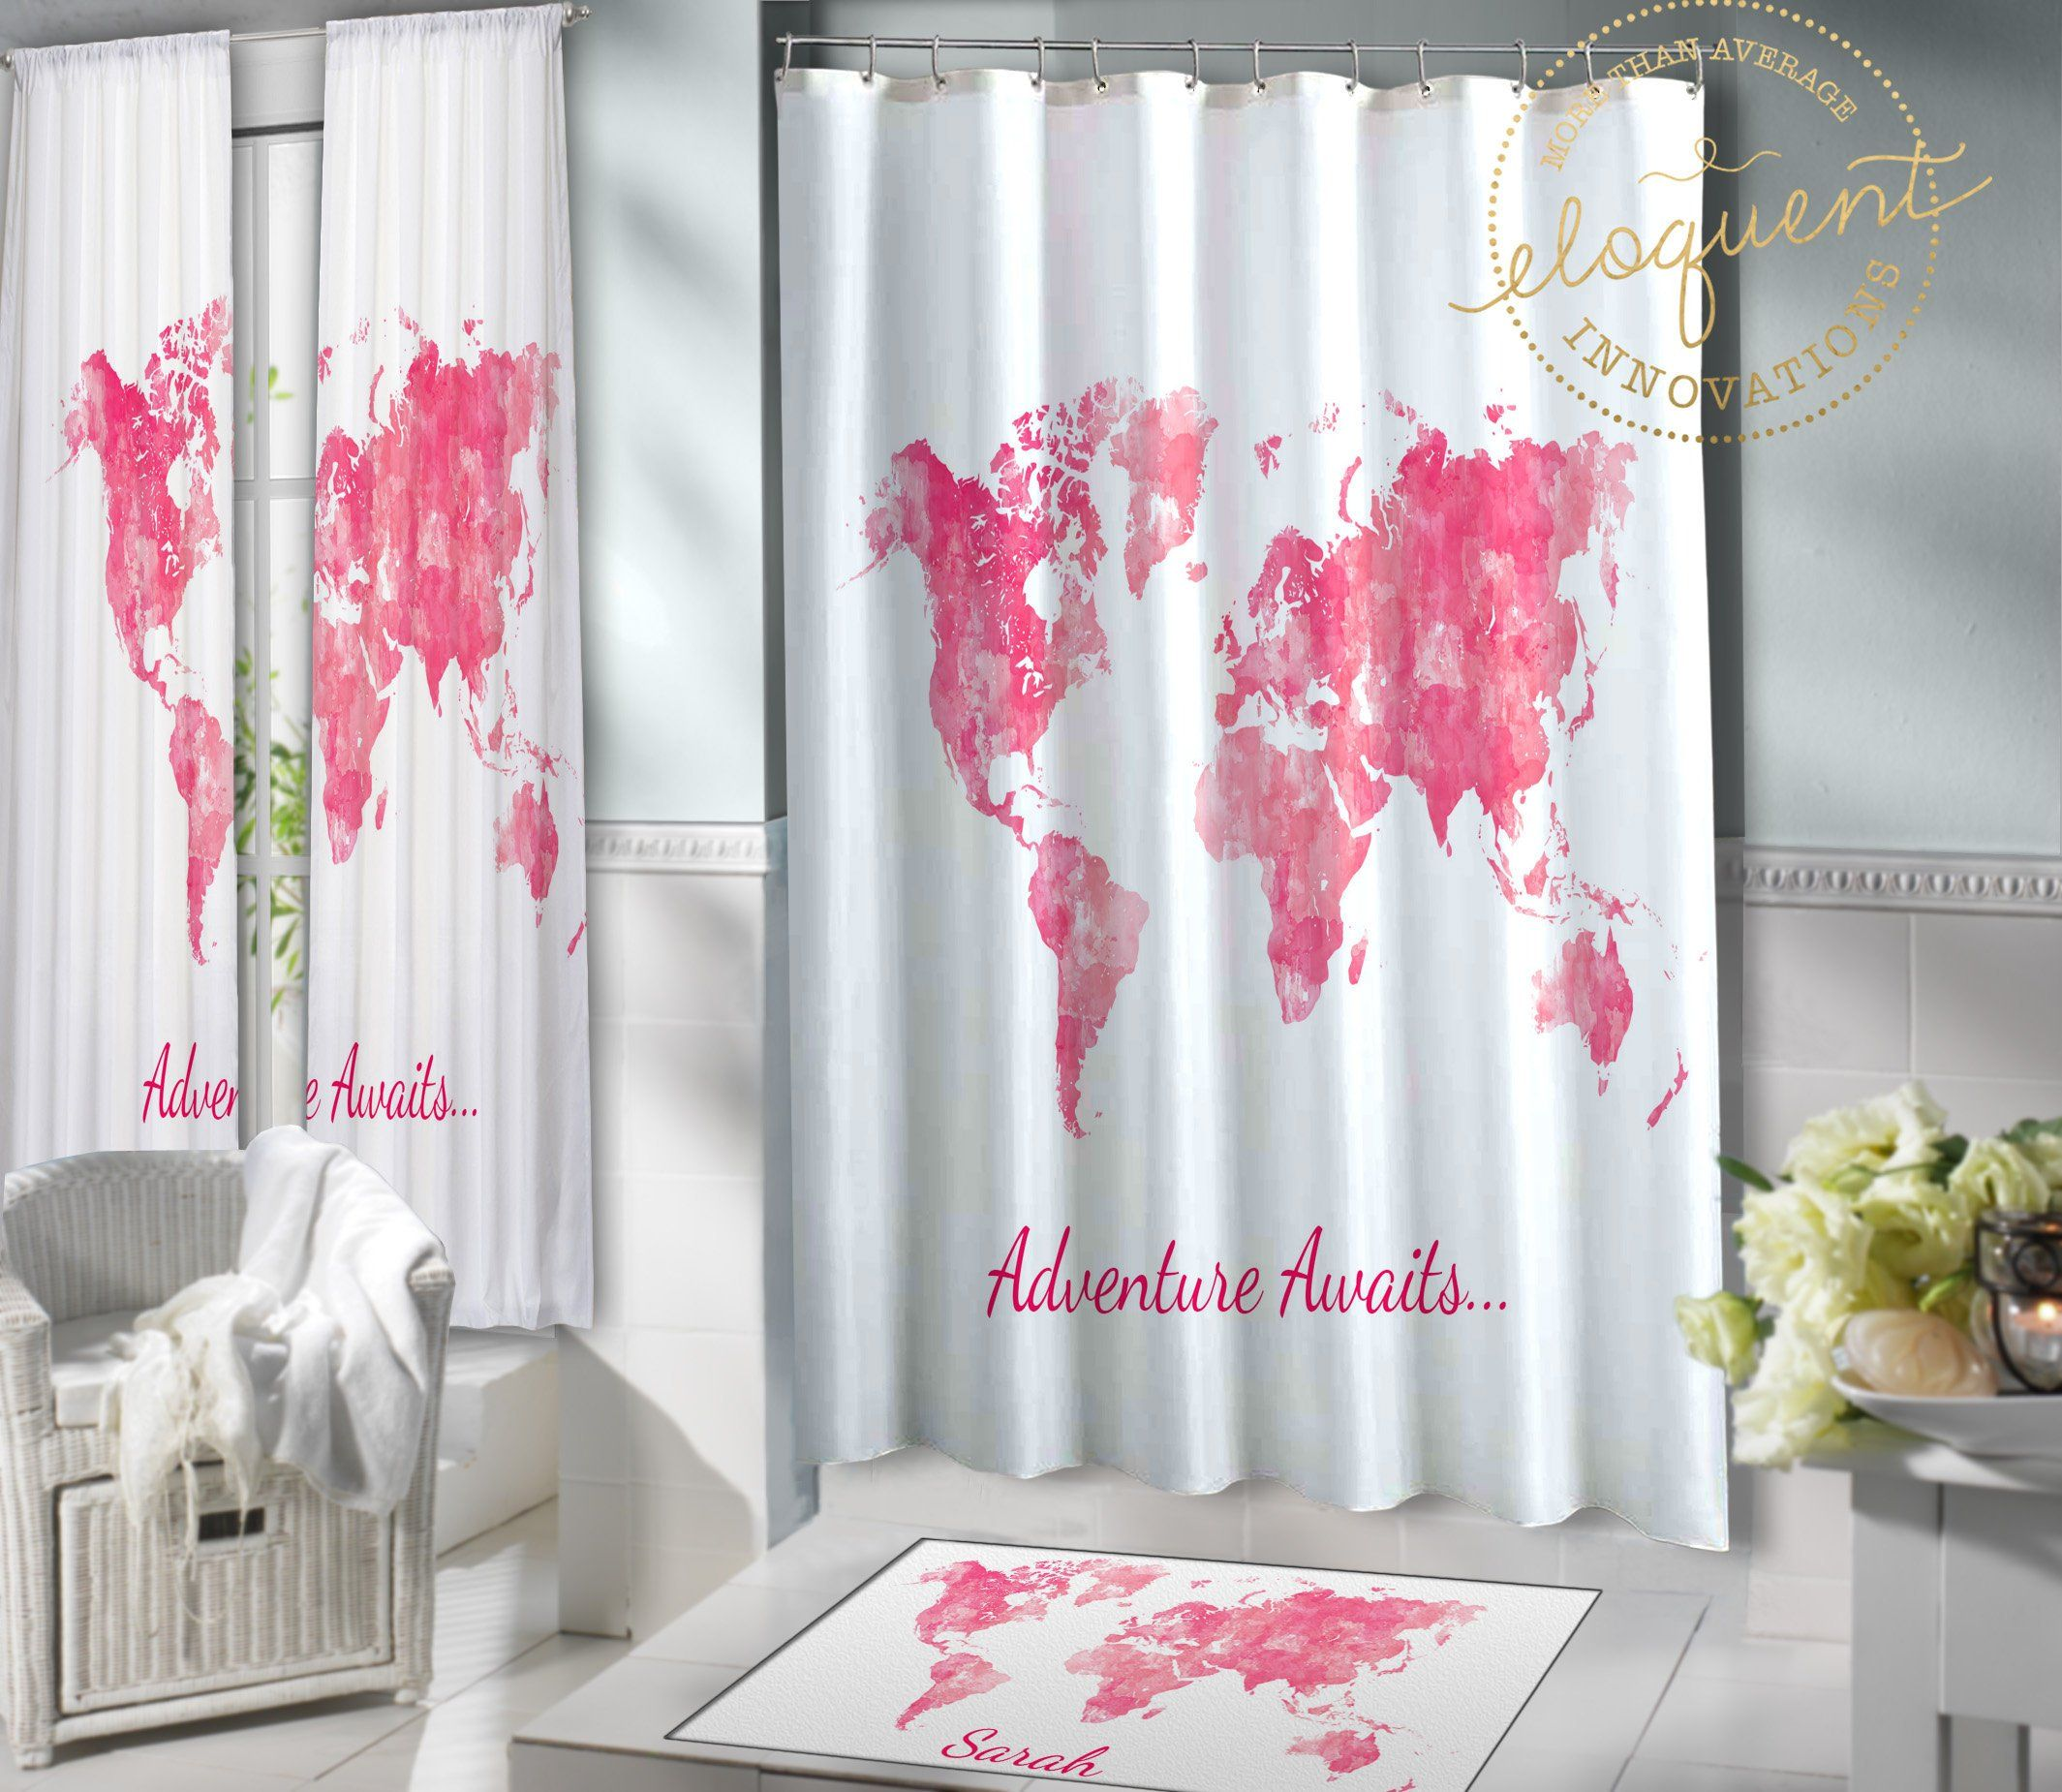 World Map Shower Curtain - Fabric - Can be Personalized with ...